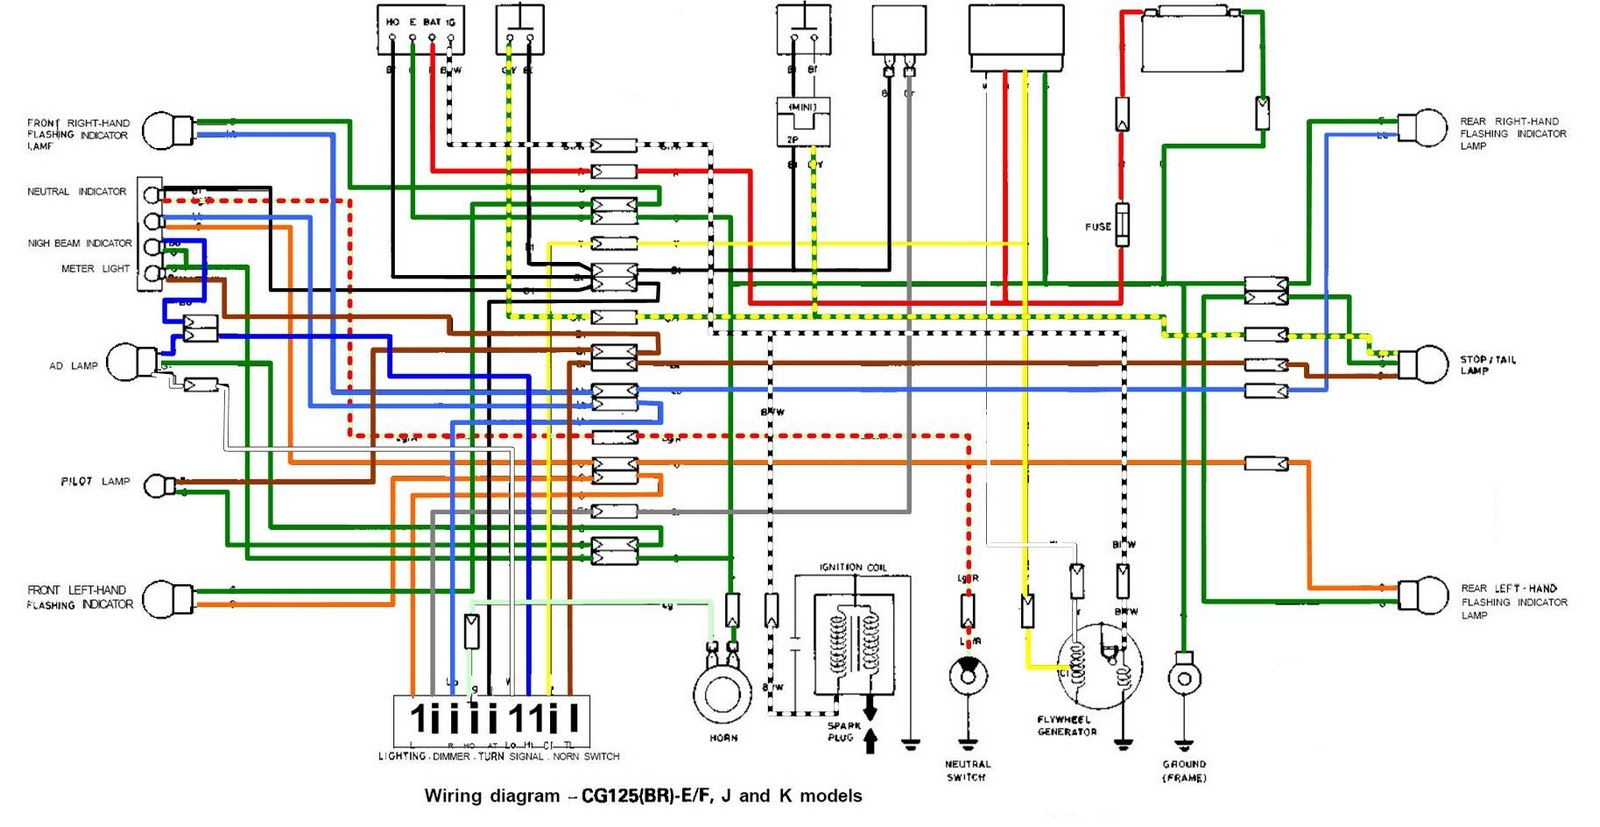 wiring diagrams for suzuki motorcycles uml free software how can, Wiring diagram